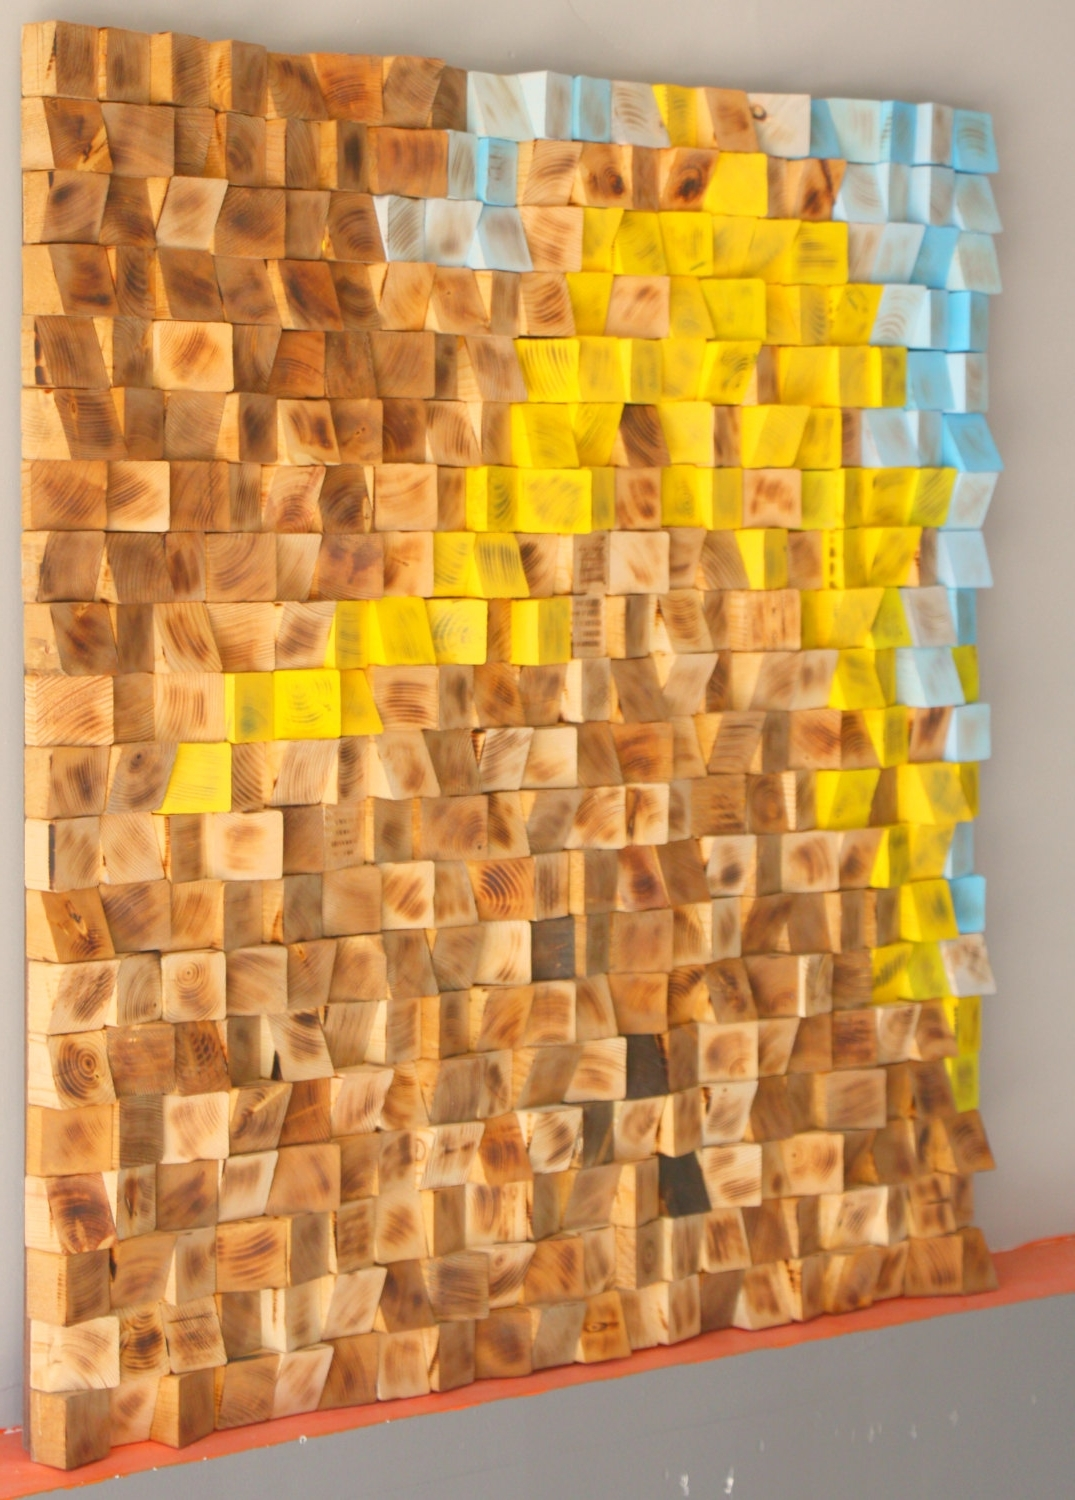 Buy Reclaimed Wood Wall Art, Wood Mosaic, Geometric Art, Wood Wall Throughout Well Known Geometric Wall Art (View 4 of 20)